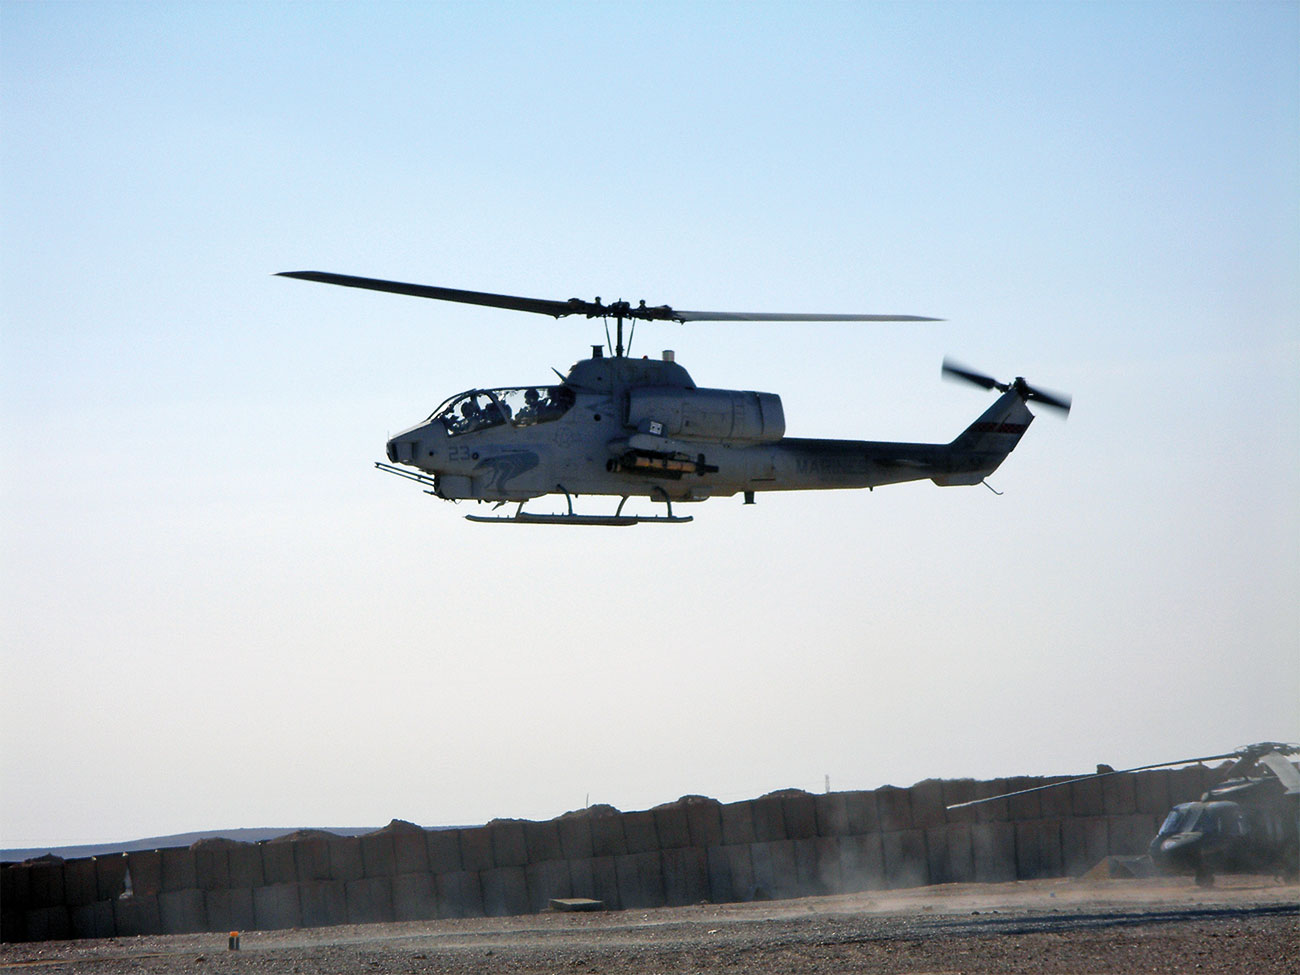 AH-1 Cobra, Attack Helicopter.